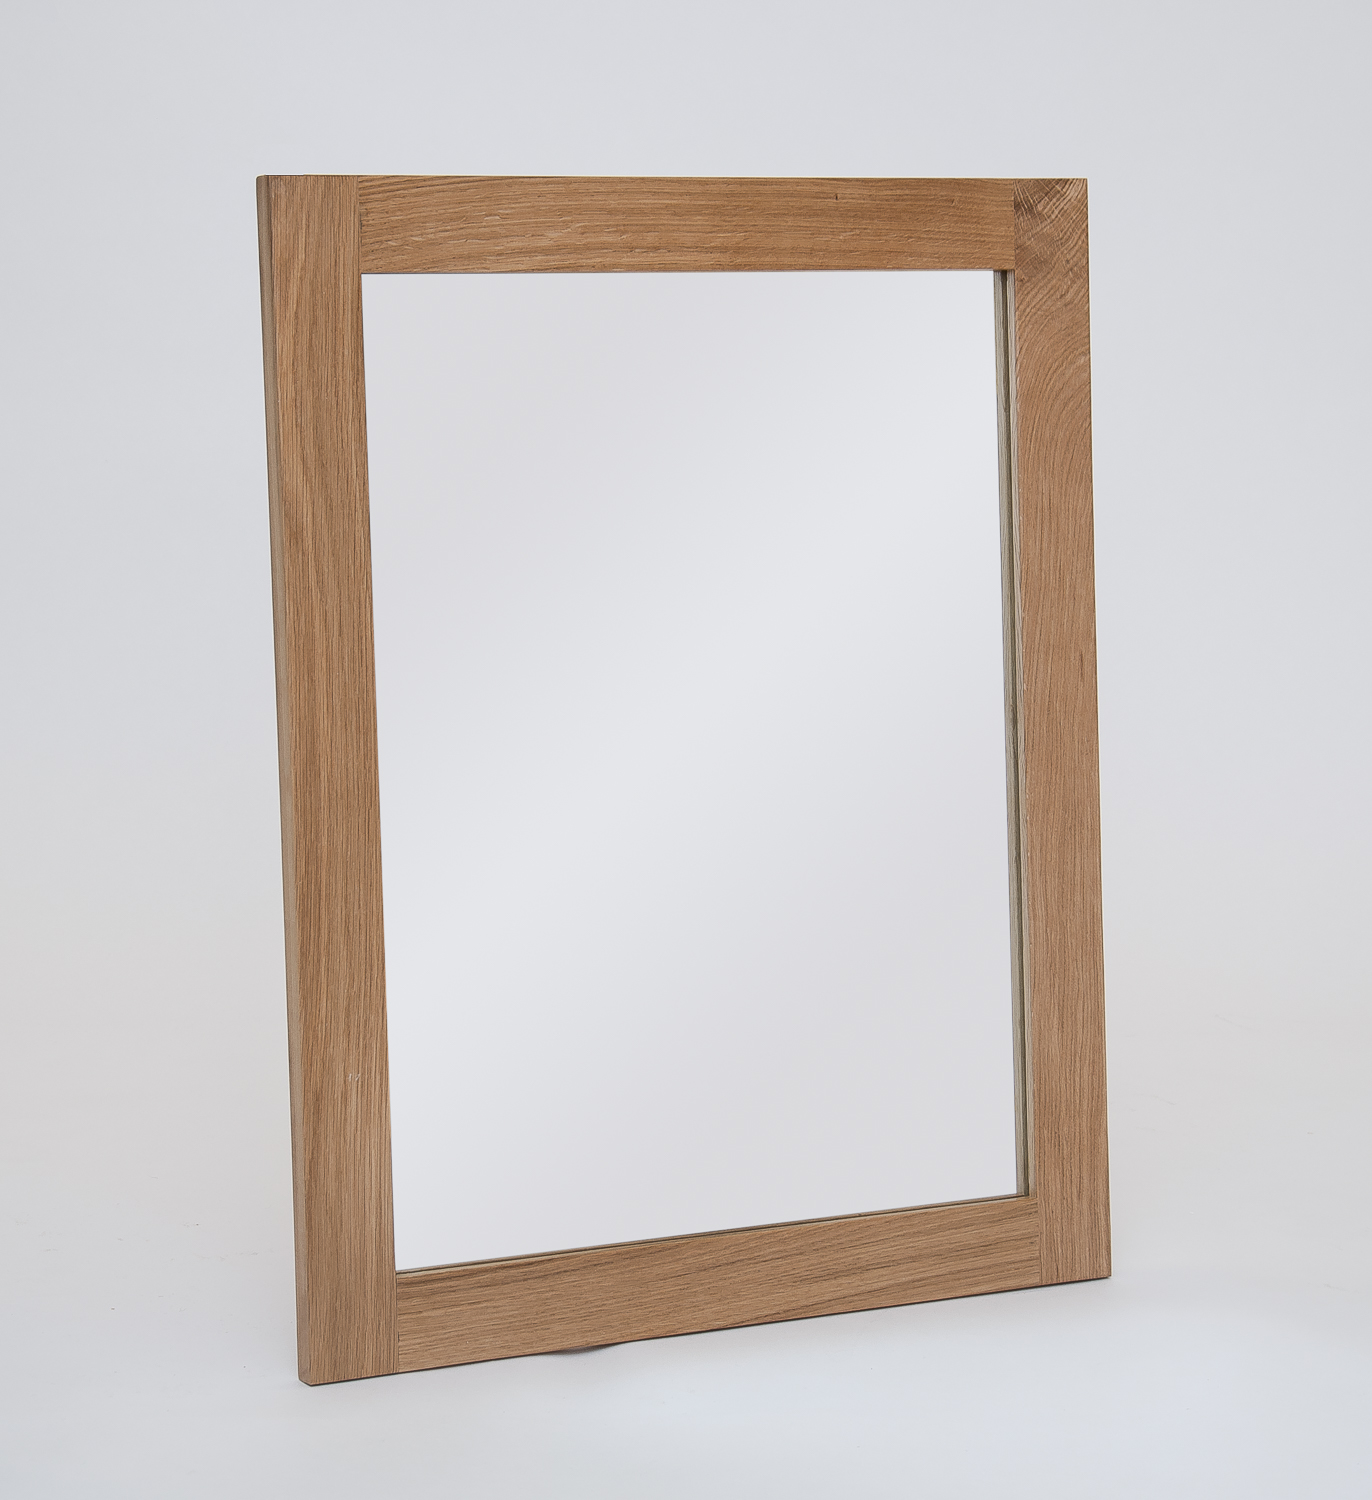 Hereford Oak Small Wall Mirror